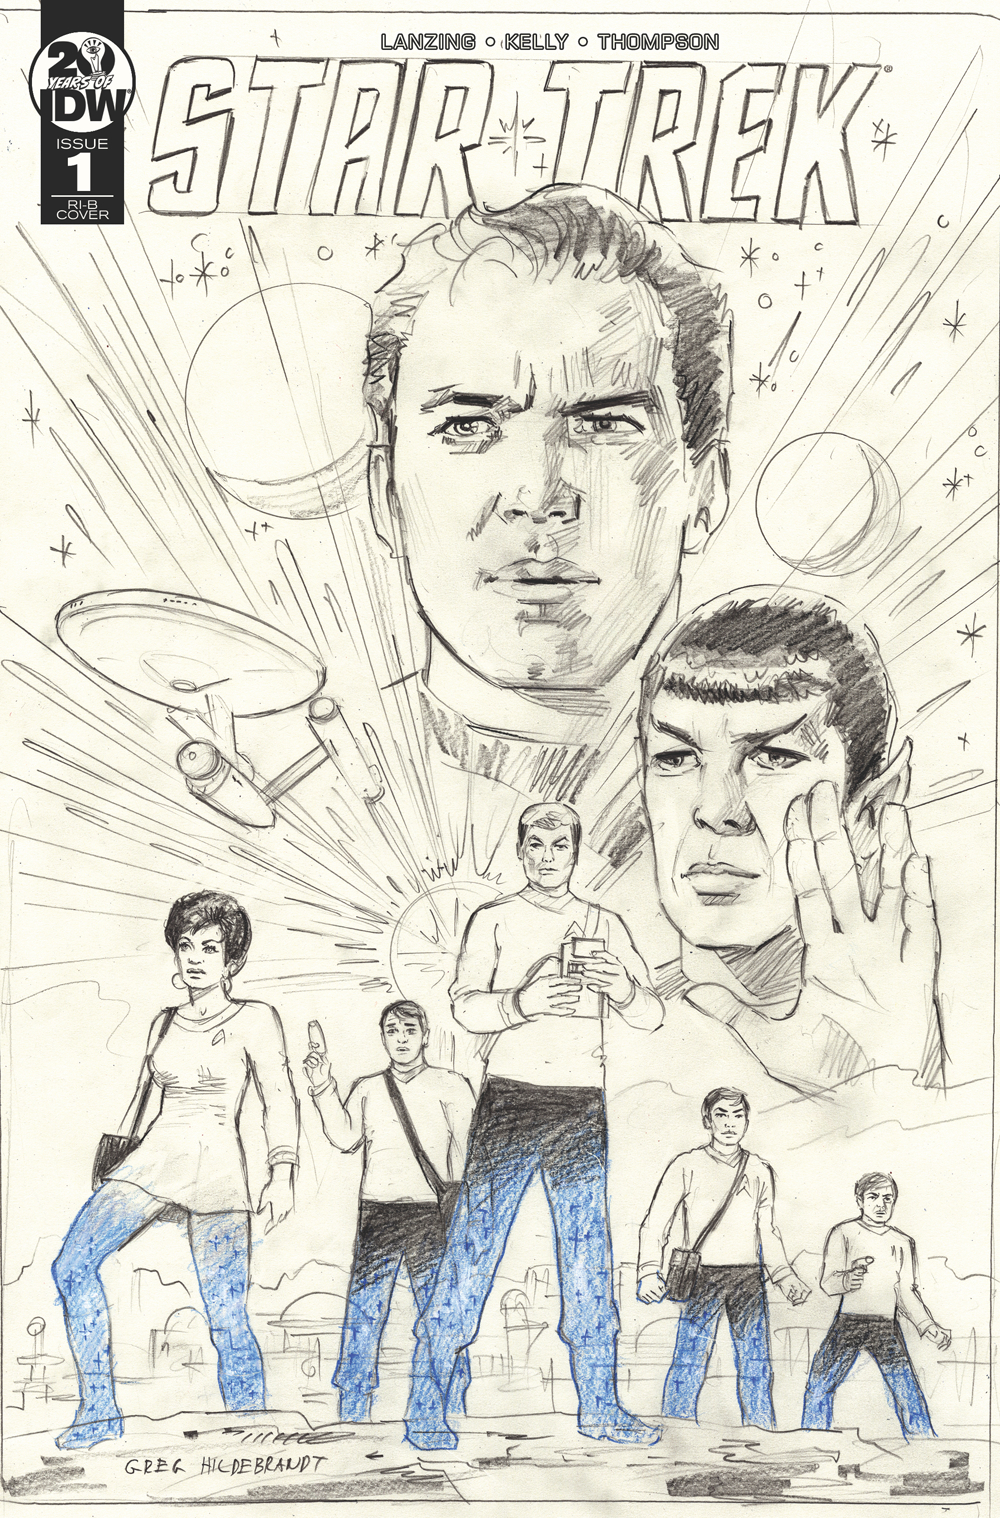 STAR TREK YEAR FIVE #1 25 COPY INCV HILDABRANDT SKETCH